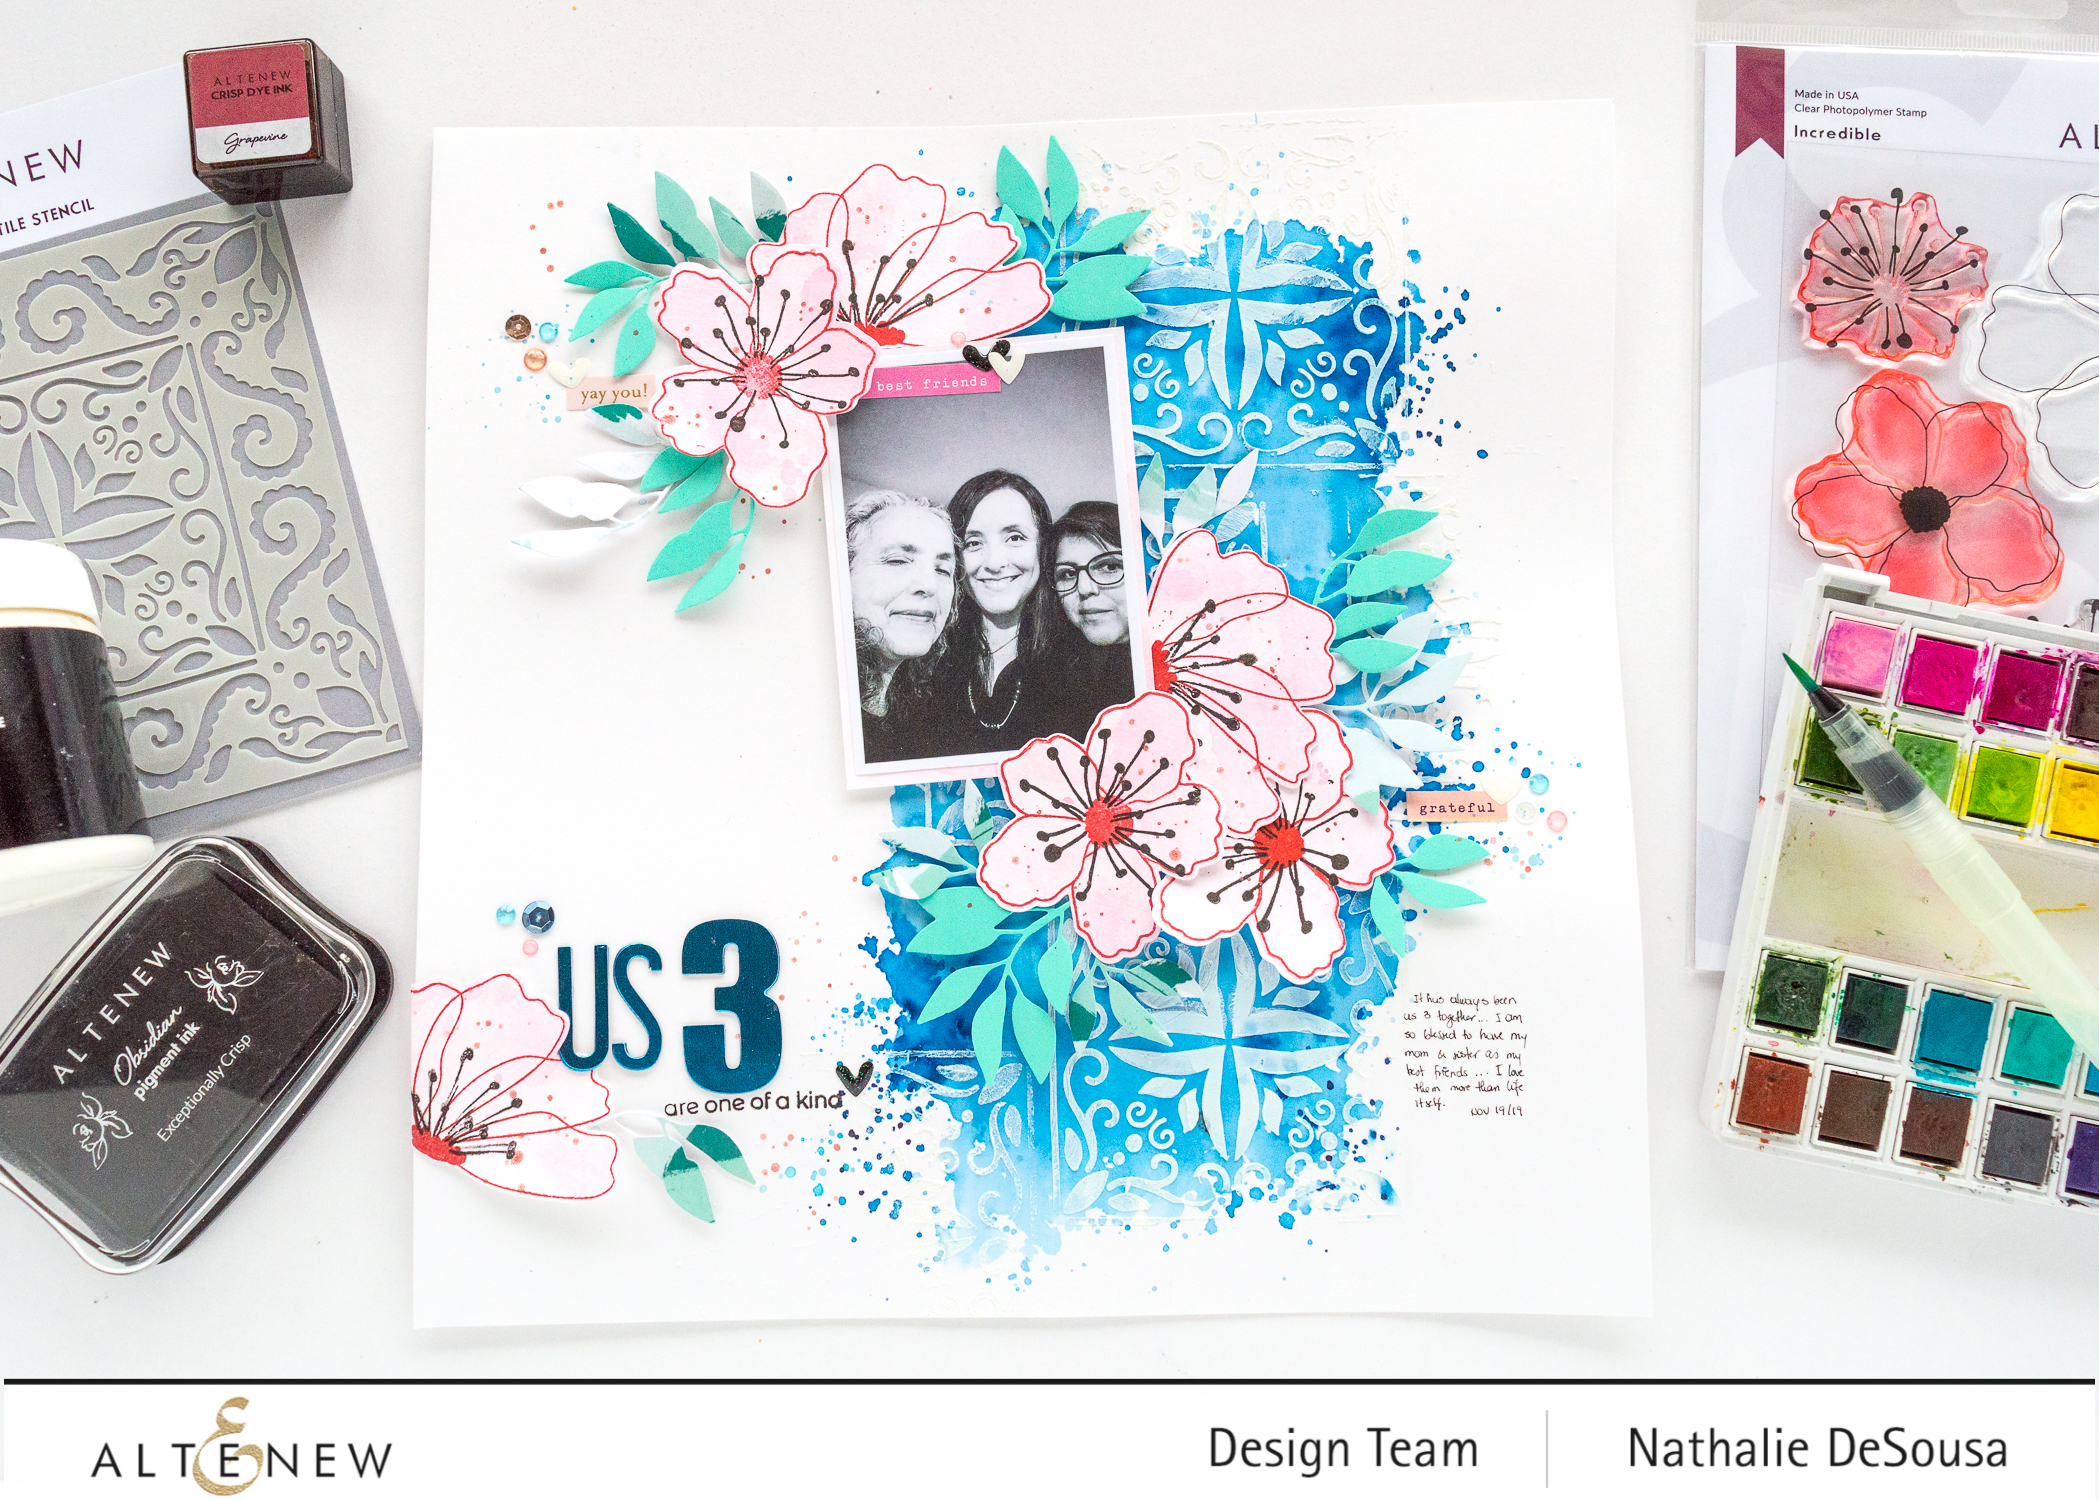 @altenew_mixed media layout feat, Incredible stamp set by Nathalie DeSousa